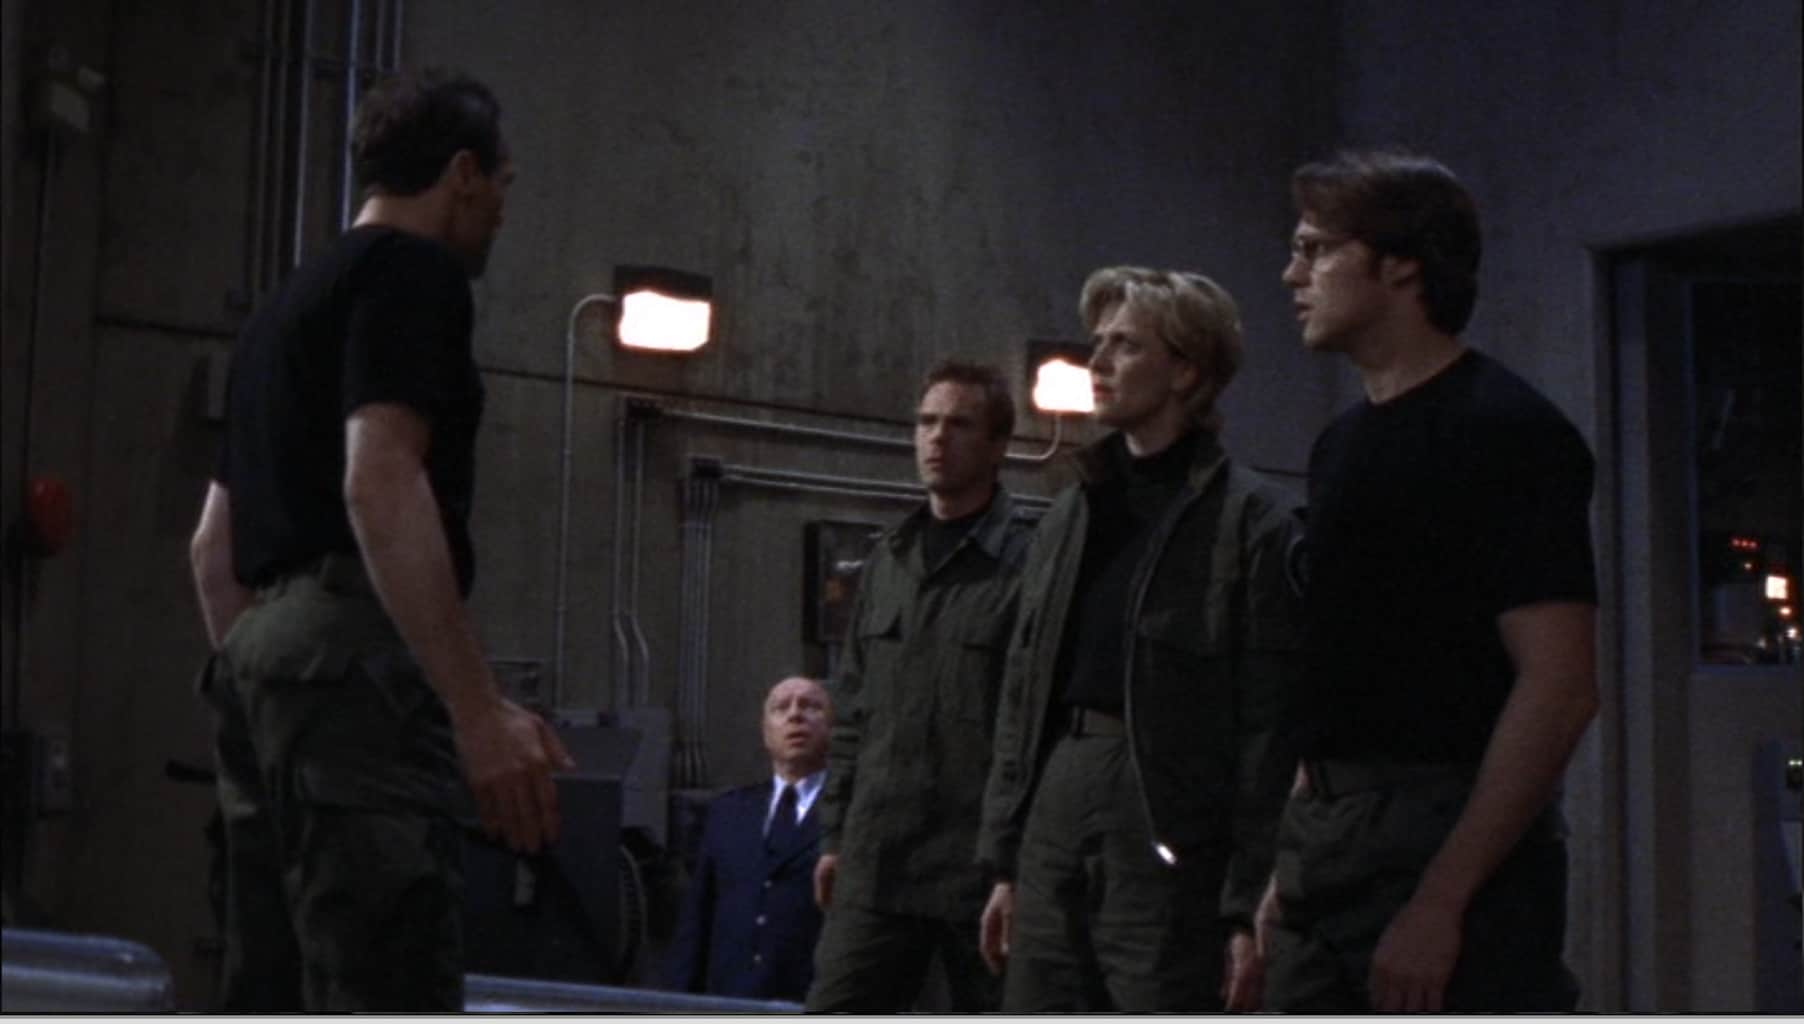 Stargate: SG-1 Re-Watch: The Enemy Within (Season 1 Episode